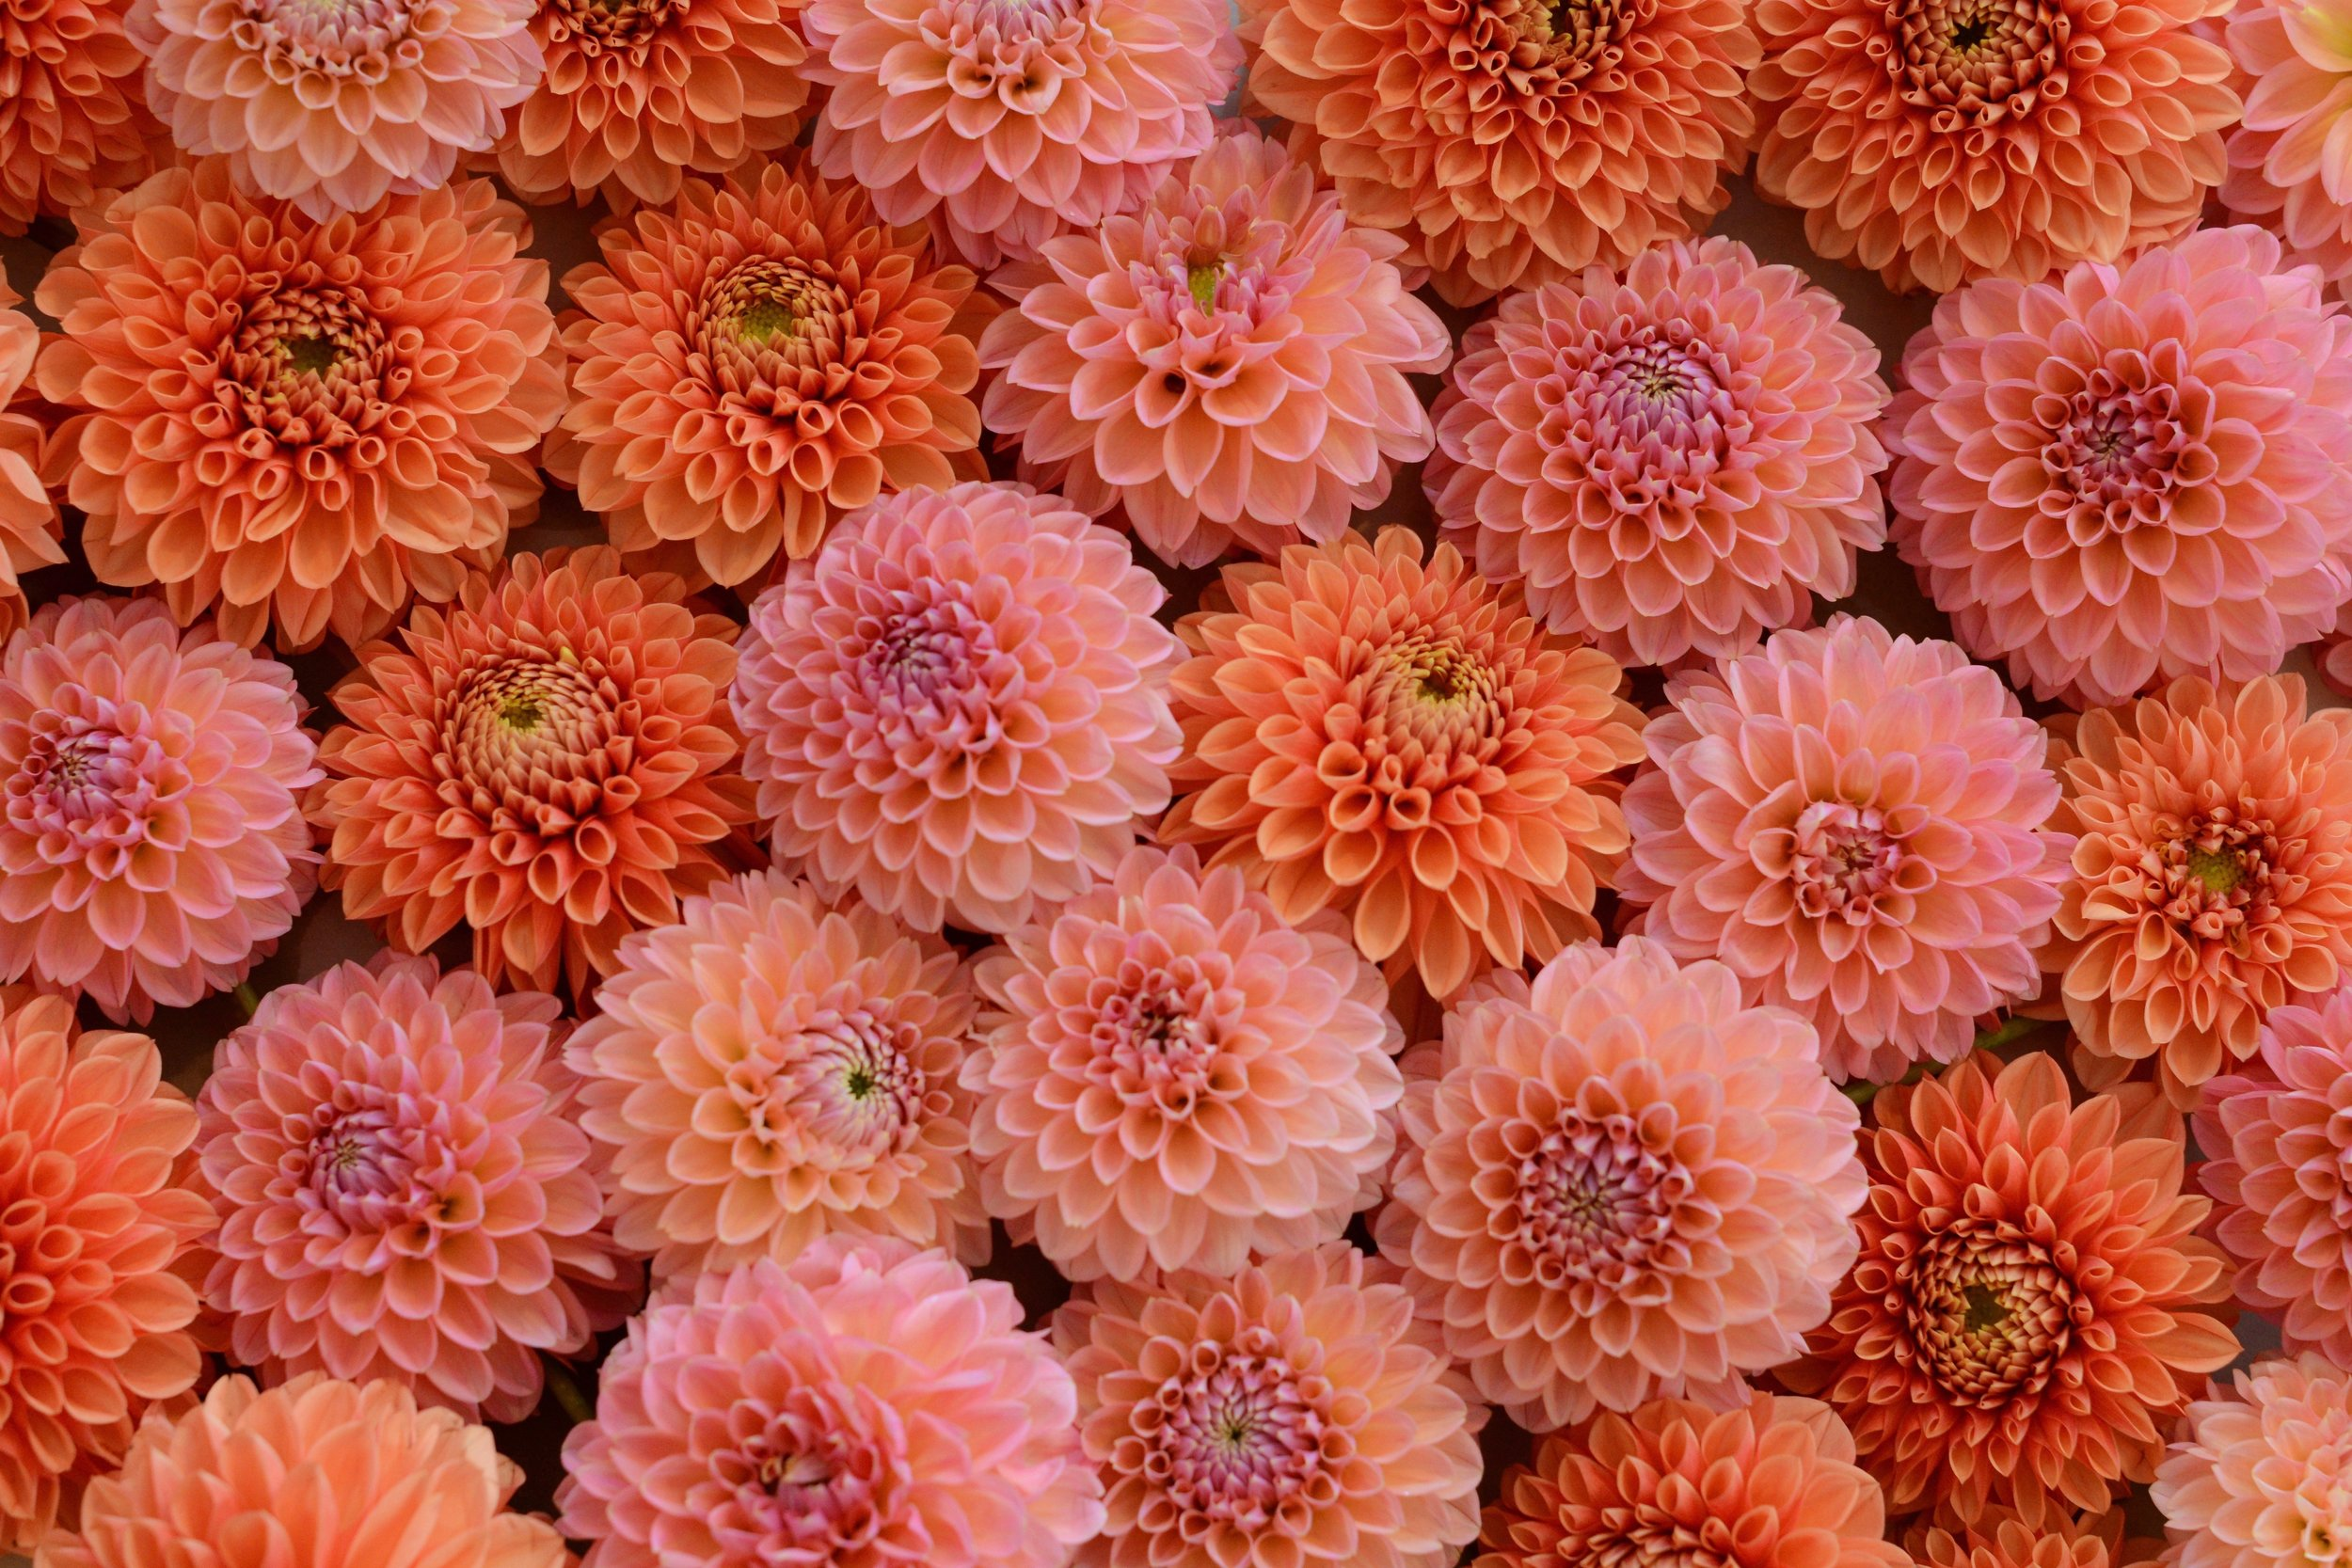 Perfect little puffs of orange and pink!